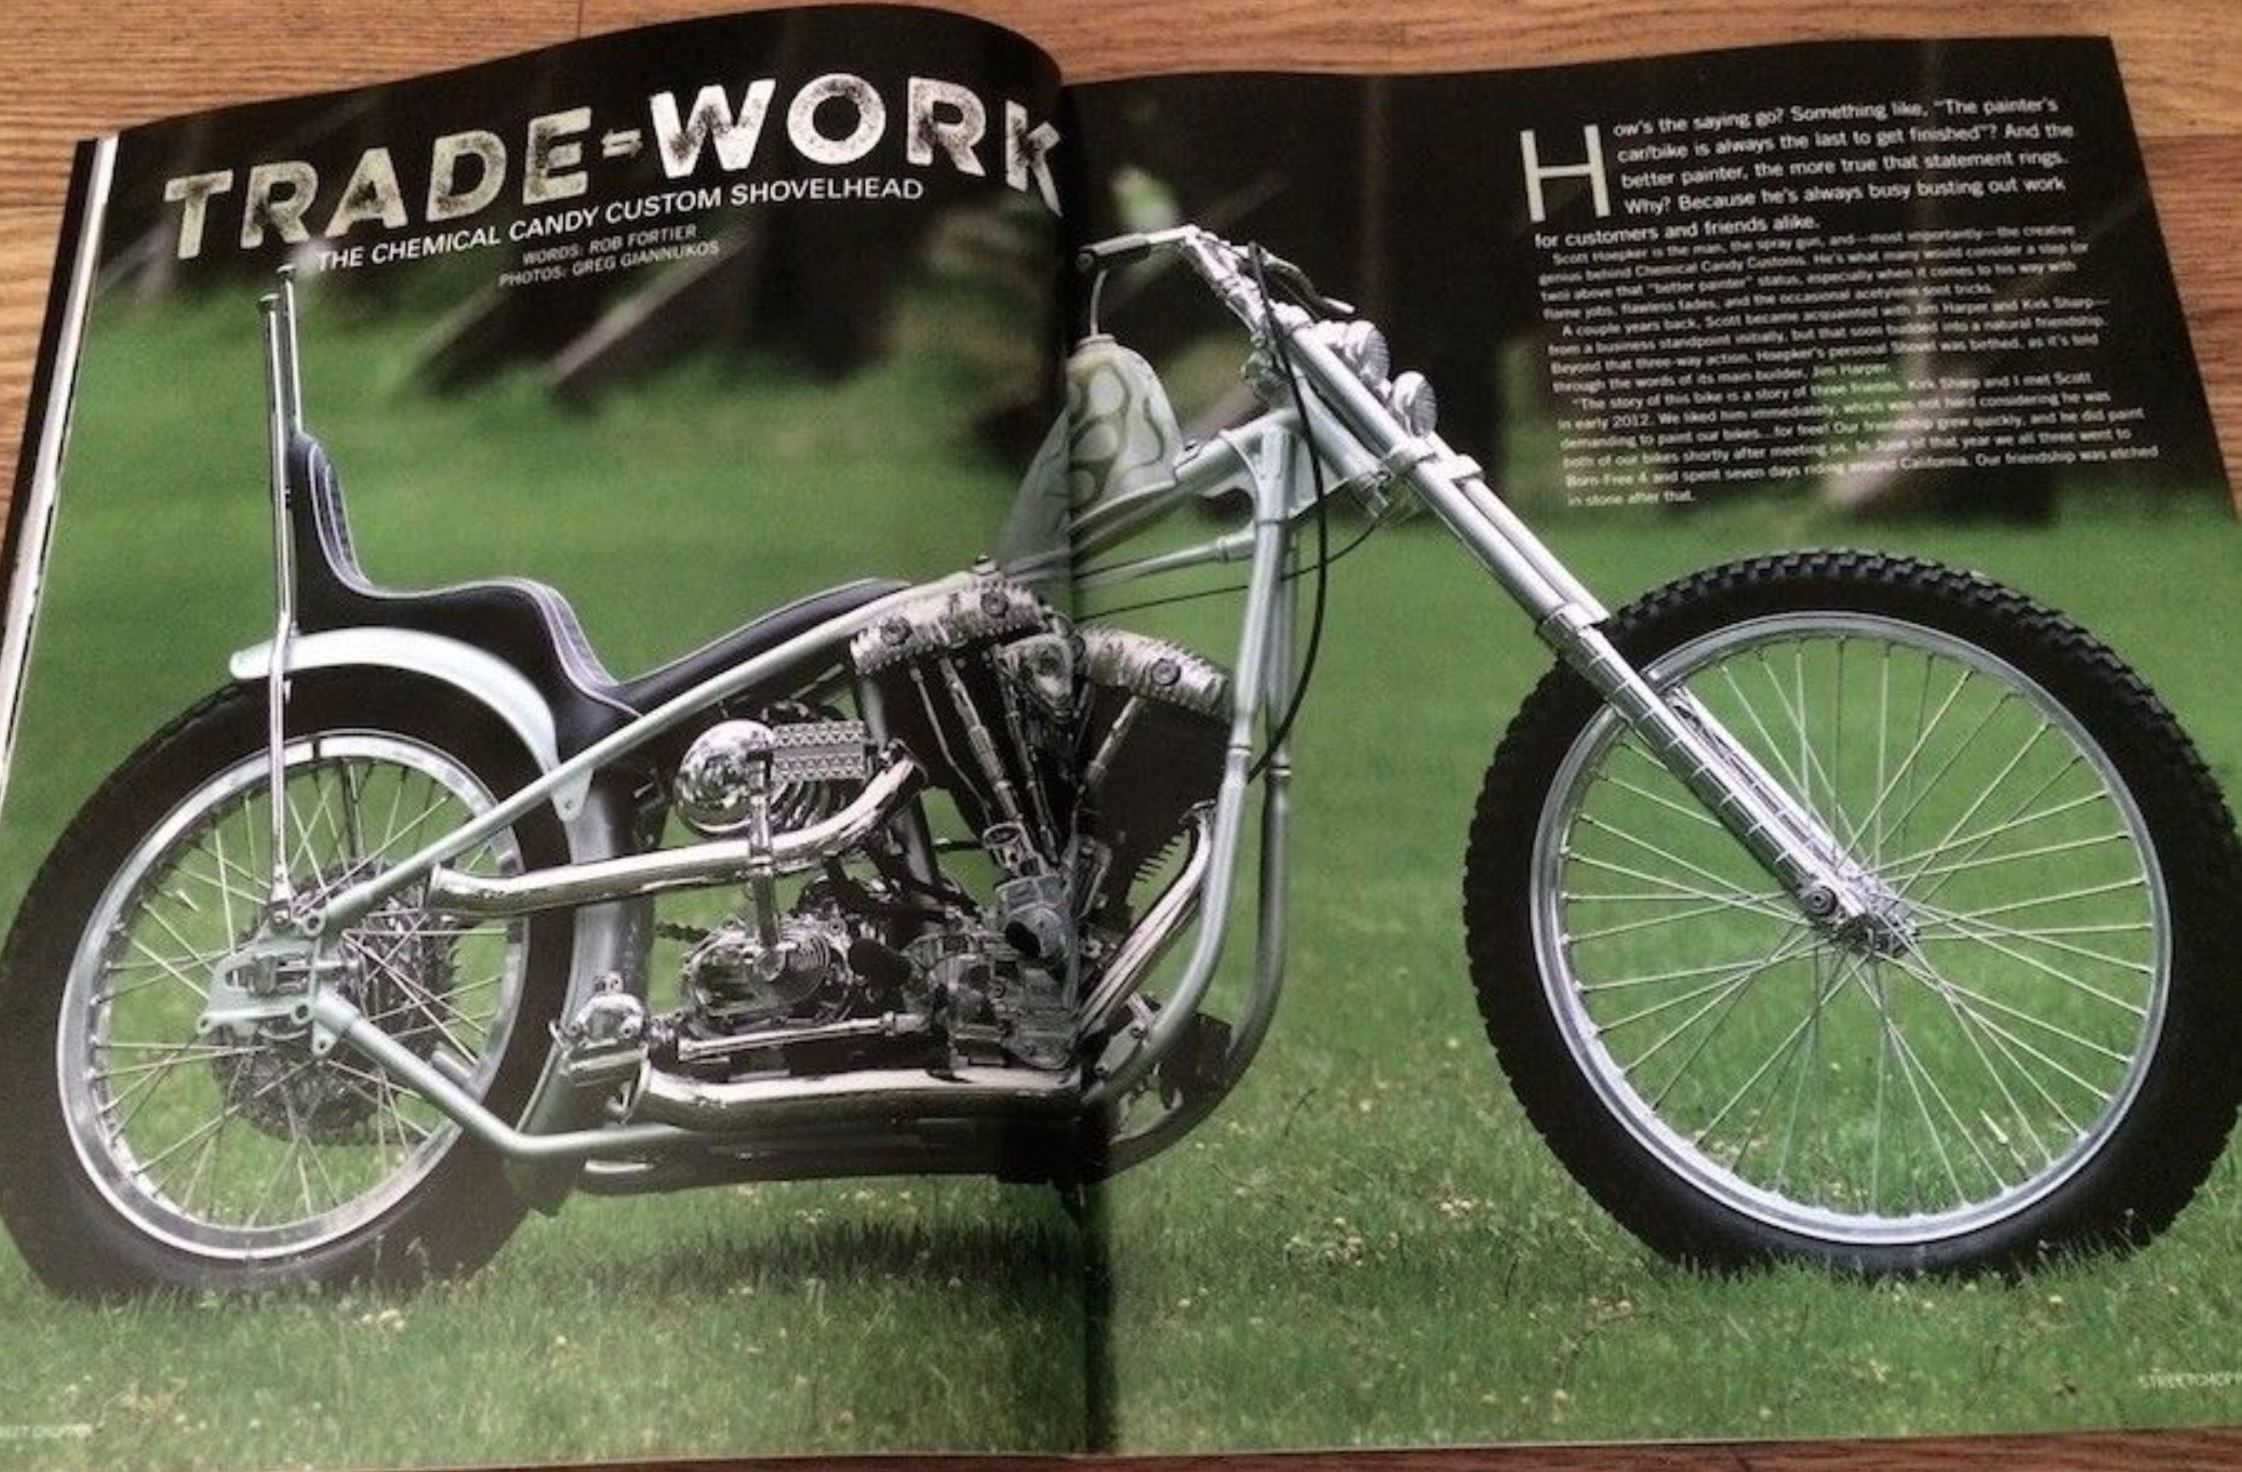 Chemical Candy Build – 1976 Harley-Davidson Shovelhead